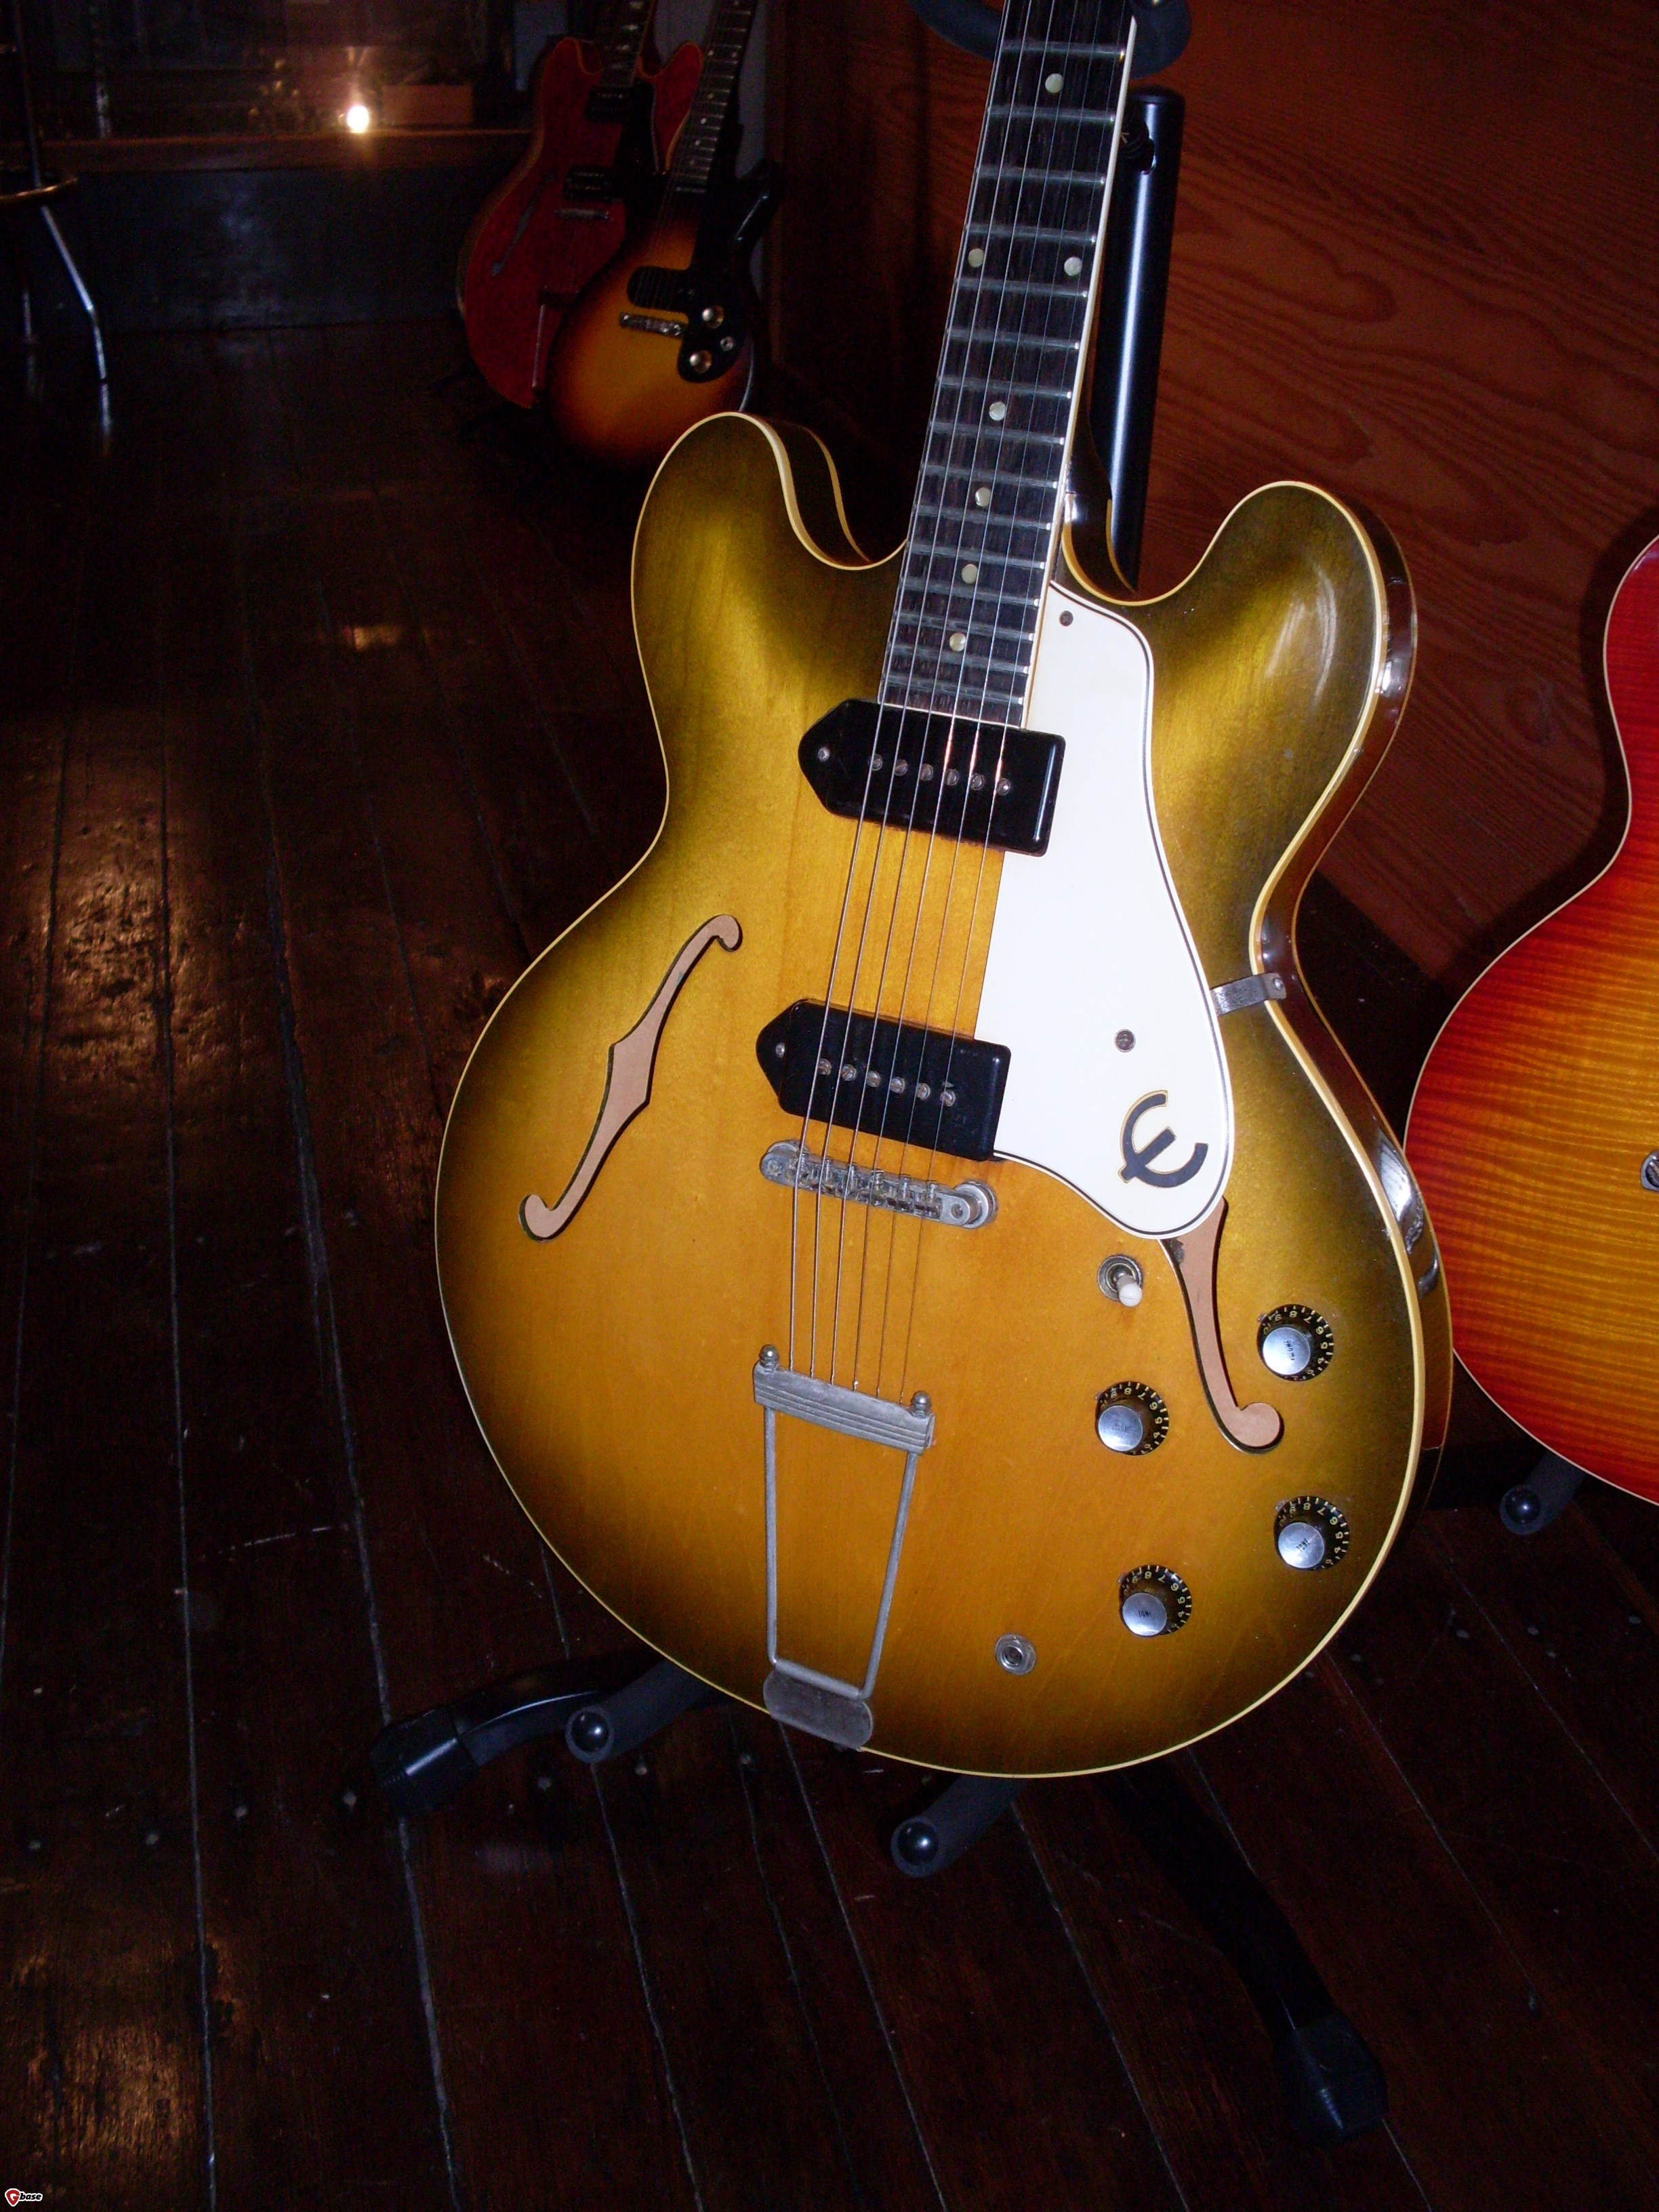 Es 330 The Gibson 335 Home Electrics Rare Finds Used Vintage Hofner 463 S E3 Archtop Here It Is Without That Pesky Hangtag In Way This Ones A Bit Faded